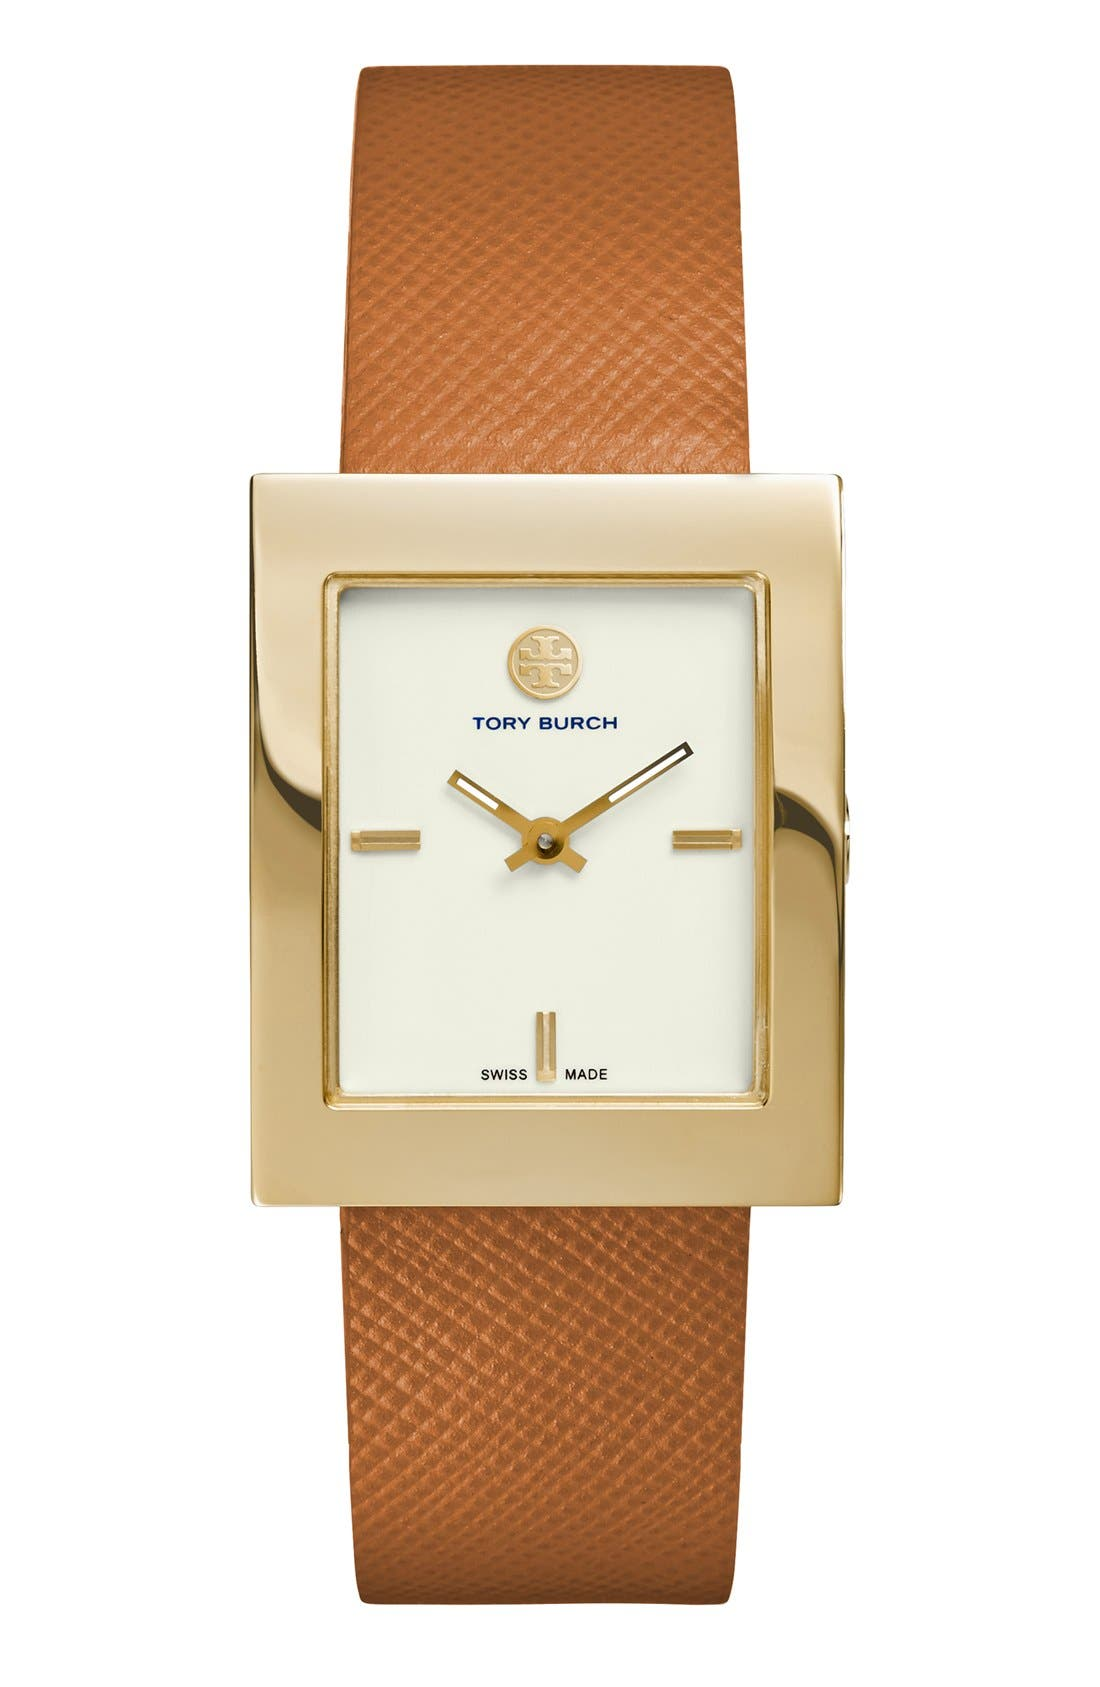 Alternate Image 1 Selected - Tory Burch 'Buddy Classic' Rectangular Saffiano Leather Strap Watch, 26mm x 32mm